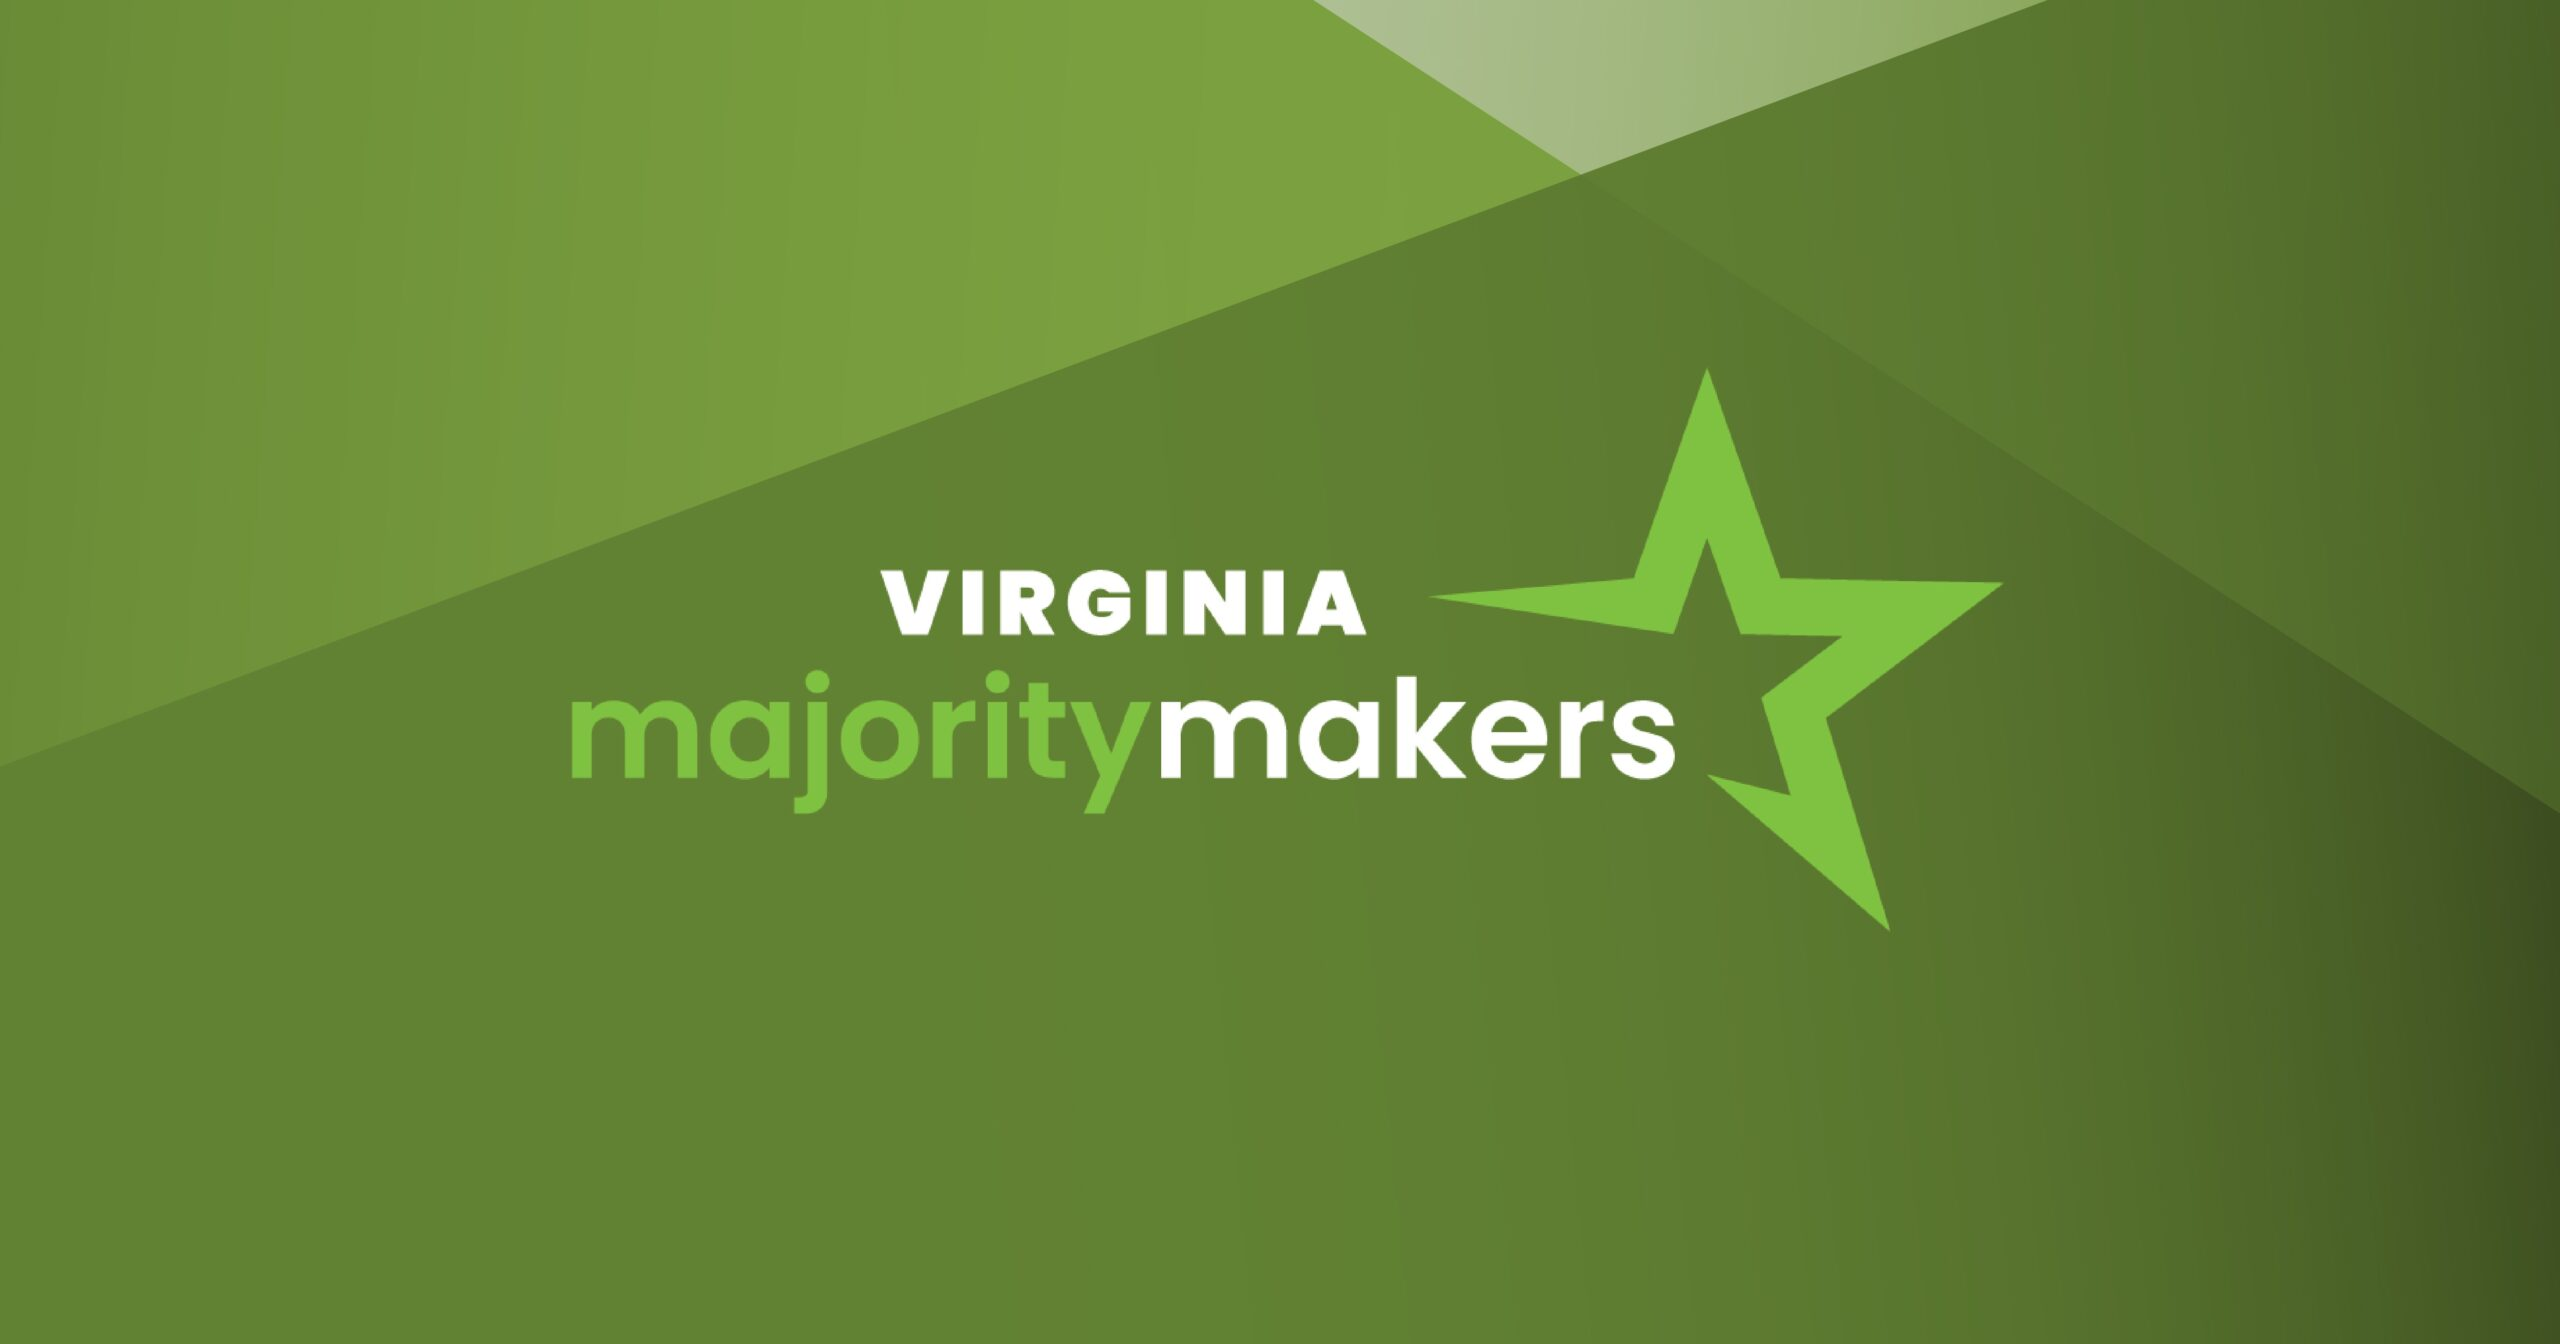 New Virginia Majority PAC Announced to Recruit and Equip Republican Candidates